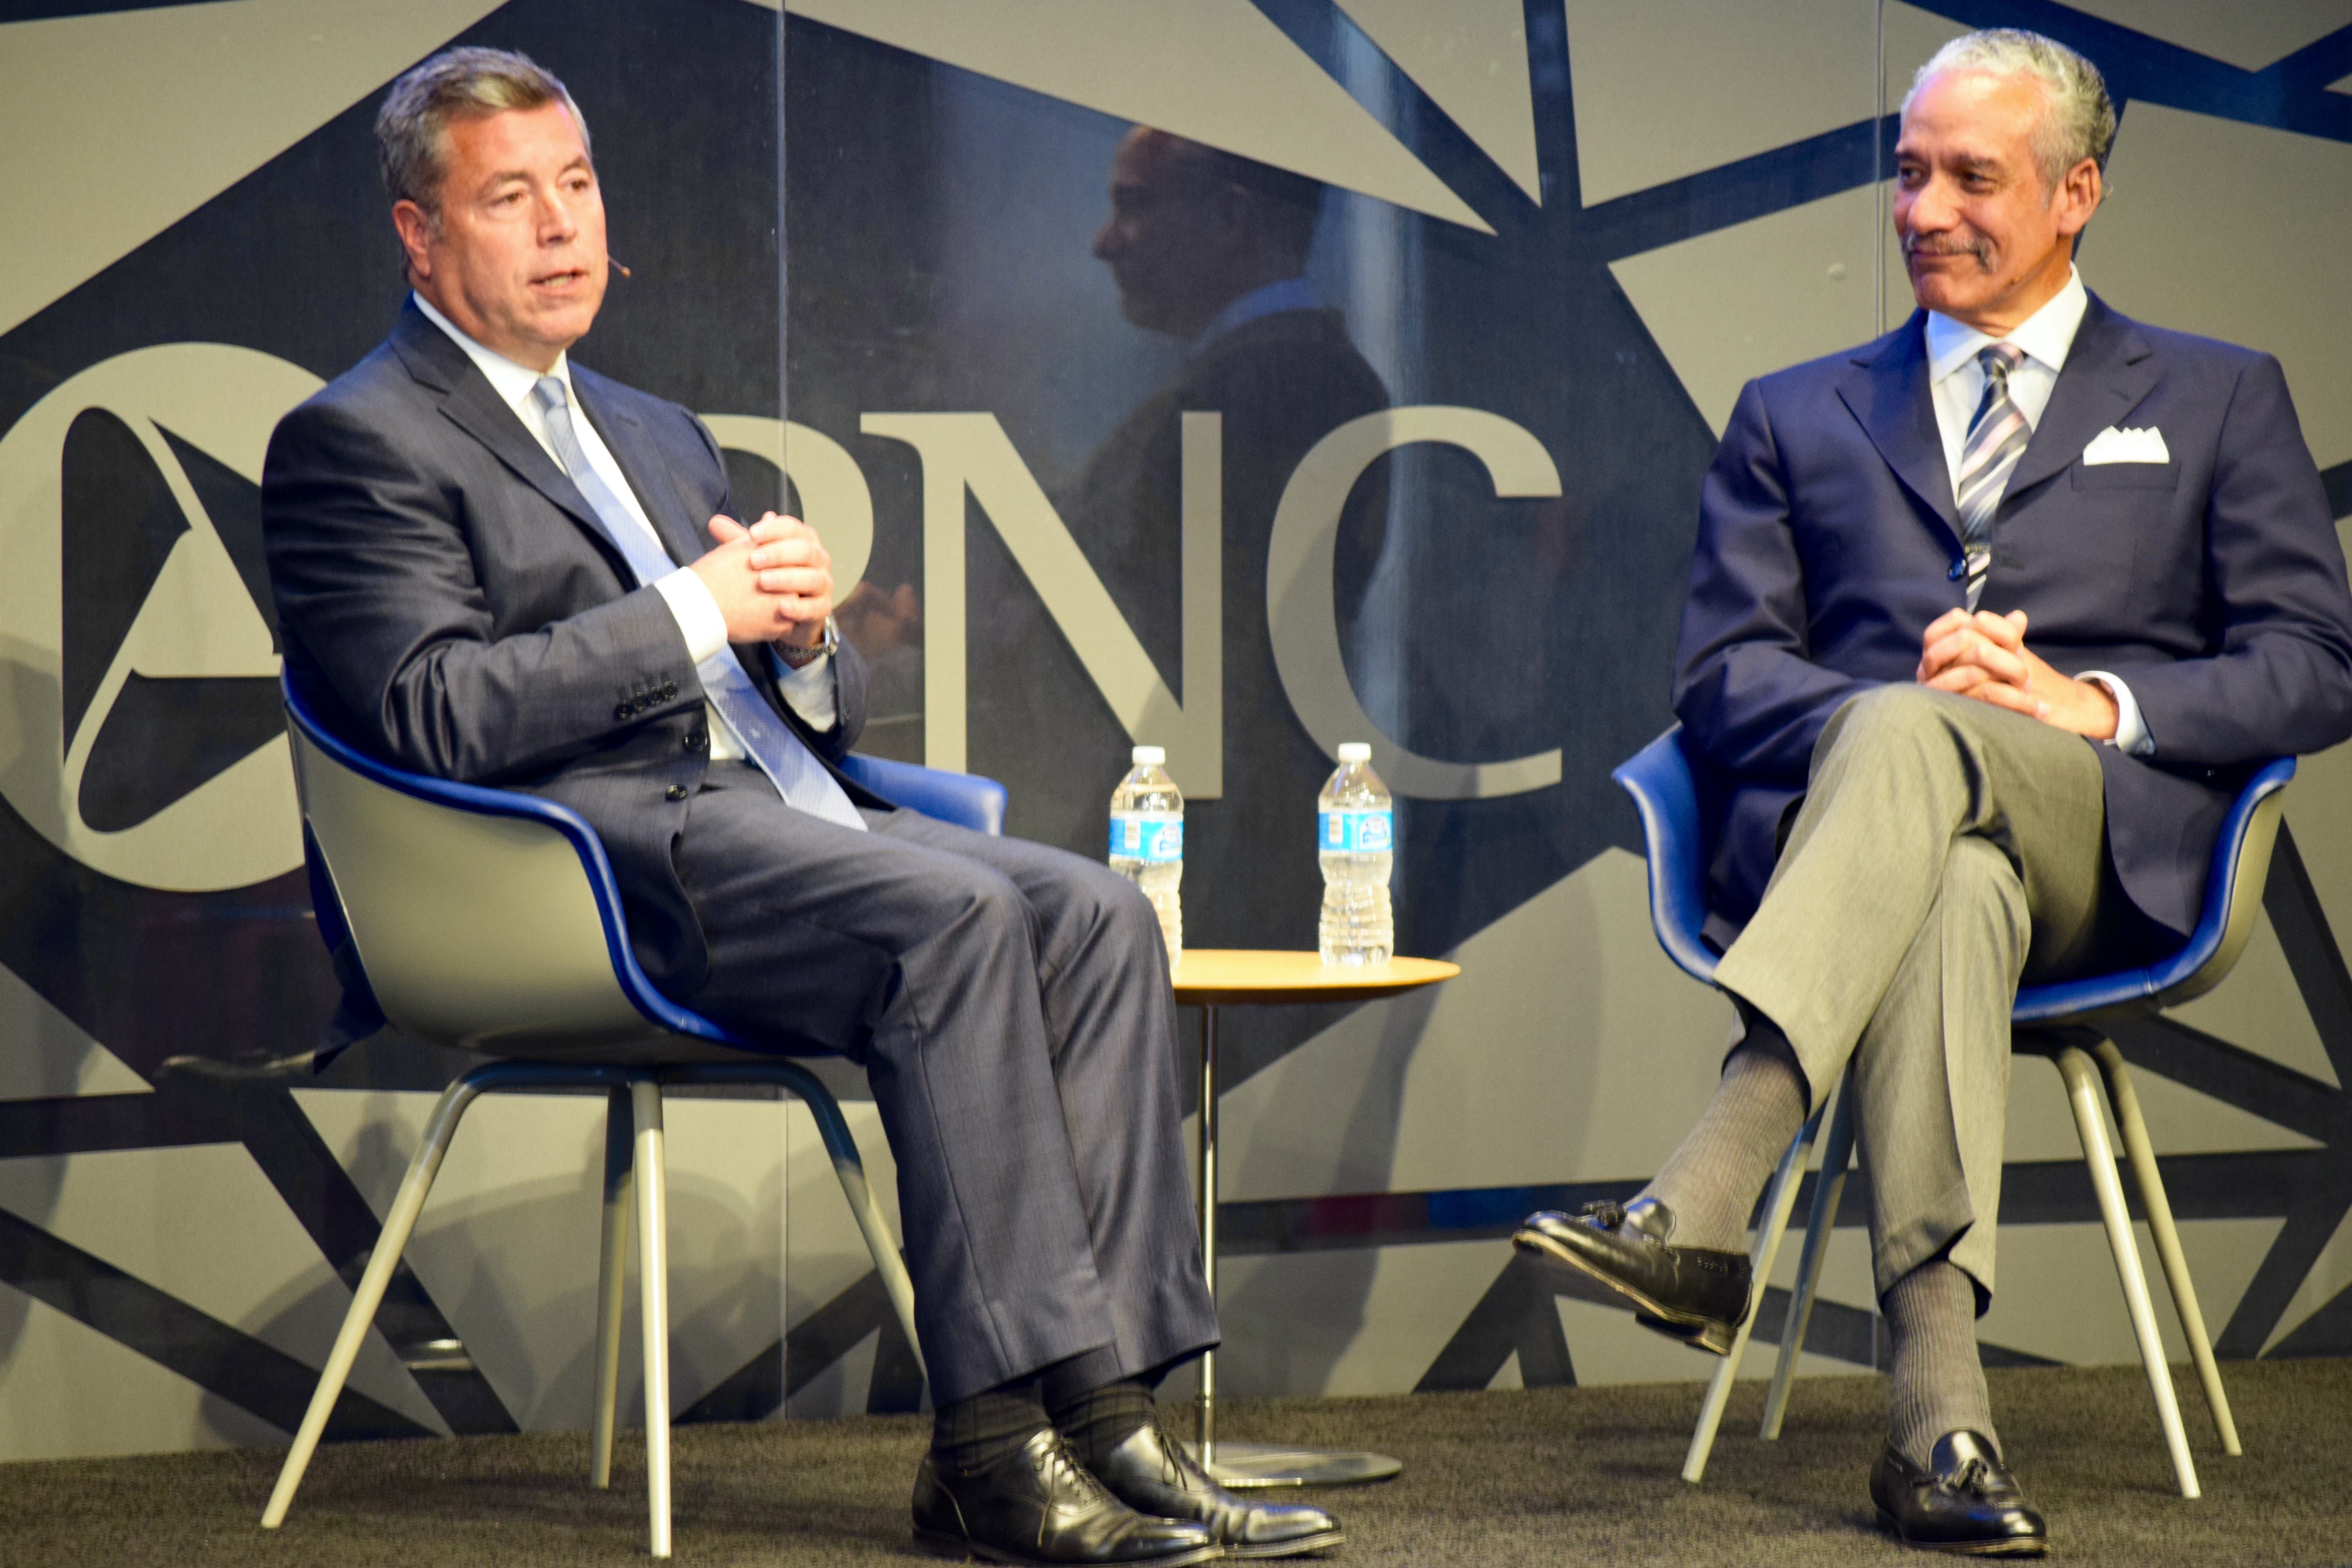 Fellows Explore The Future Of Banking At Pnc News Leadership